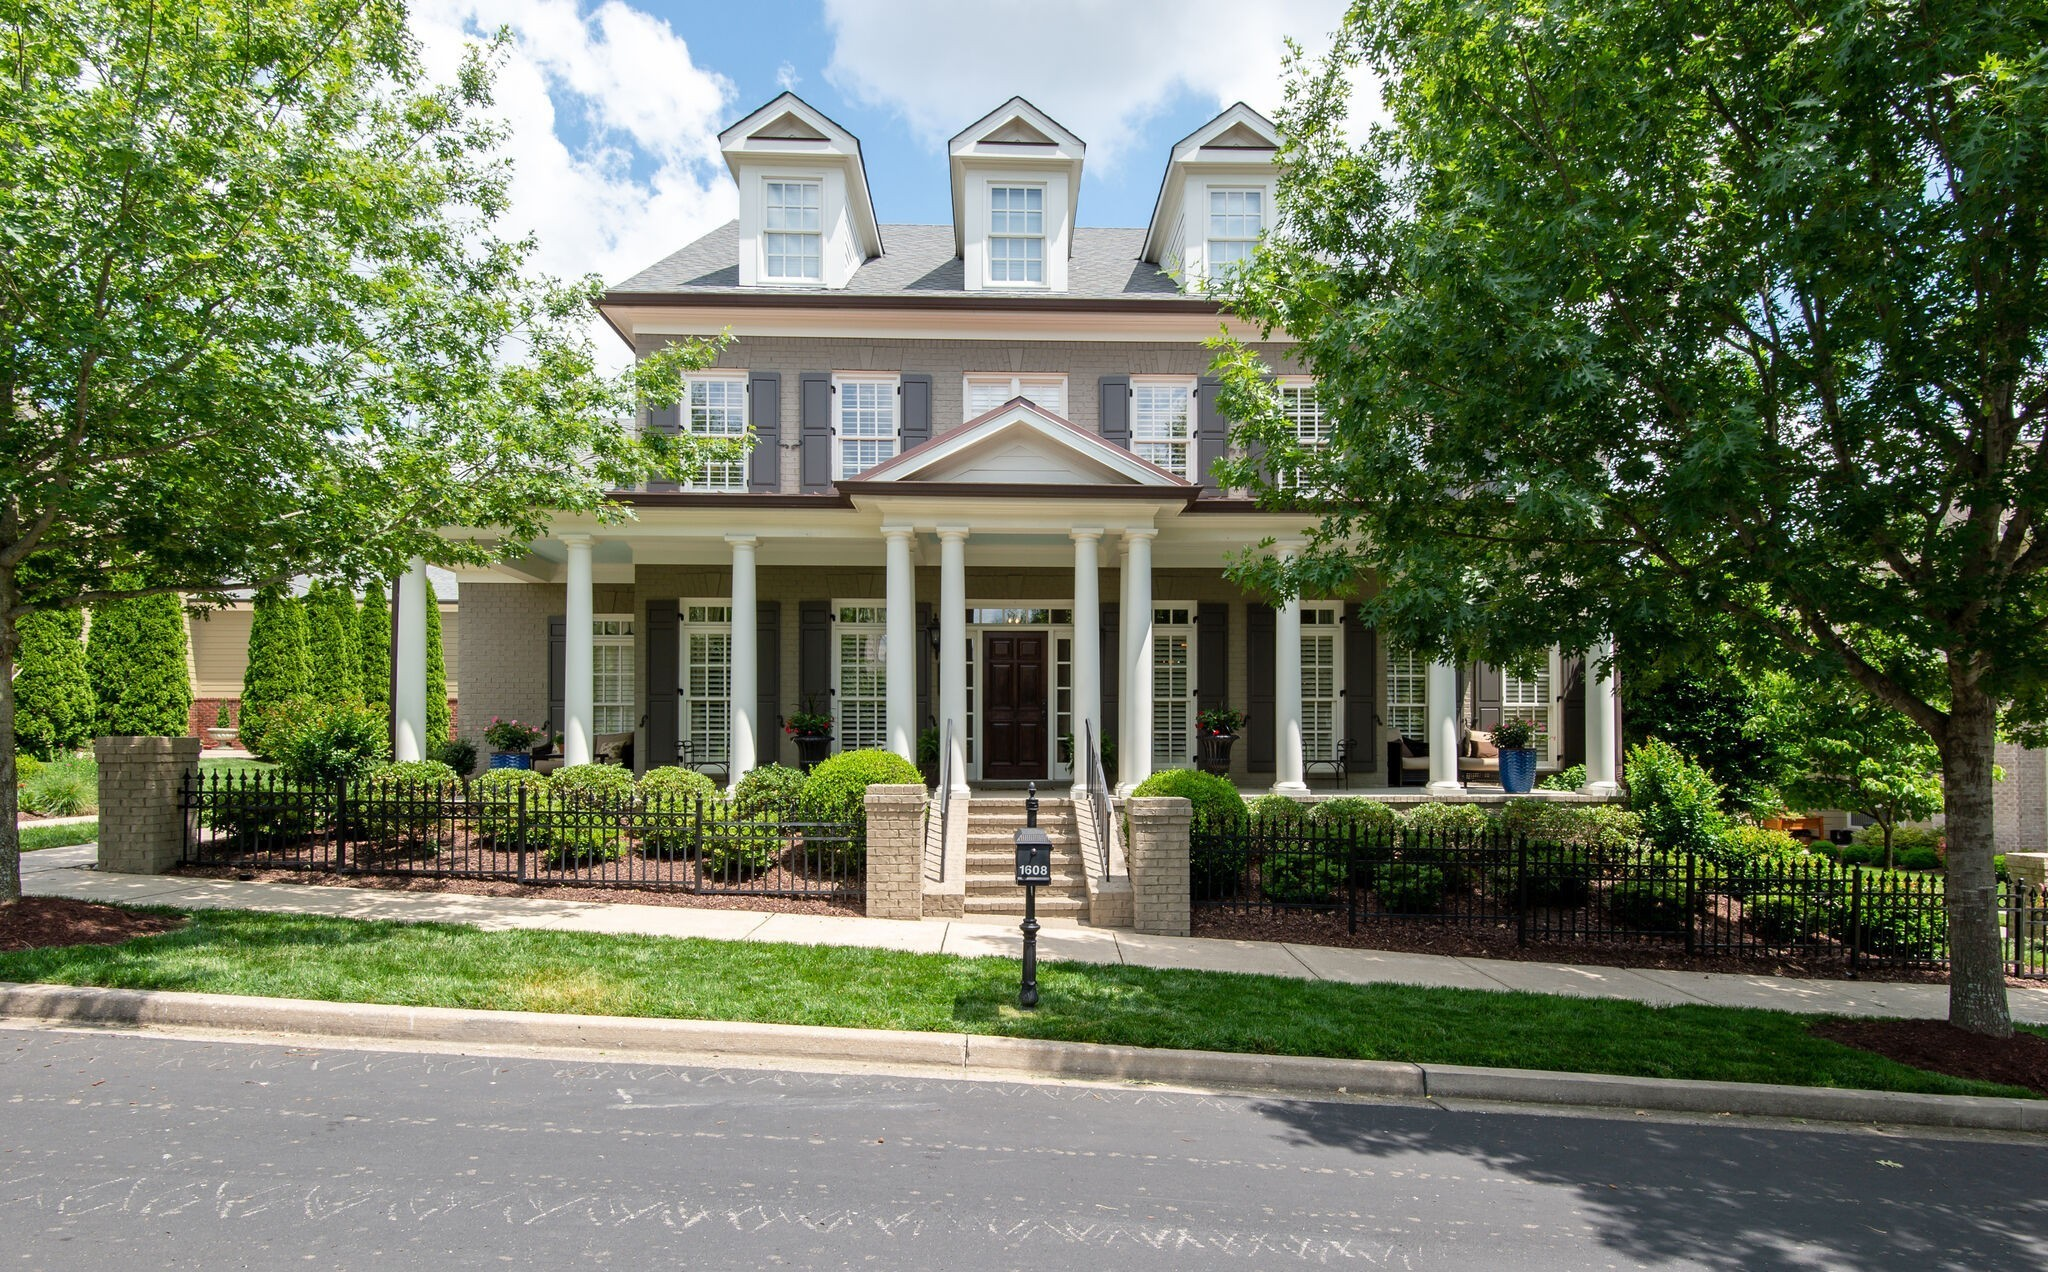 """Back on  the market Carlisle classic home! Crawl space encapsulation in progress! Well maintained,custom painted brick home-Carlisle.Southern front porch w/ 2020 roof and '16/'18 HVACS.Meticulously landscaped.Gleaming hardwoods most of main floor with fresh designer paint and master down.Chef's kitchen boasts walk in pantry,granite island w/new 36"""" 5 burner cook top /griddle.Hearth room off kitchen w/fireplace.Plantation shutters/wood blinds.Bonus room up w/ 3 beds,3 attics&large closets.."""